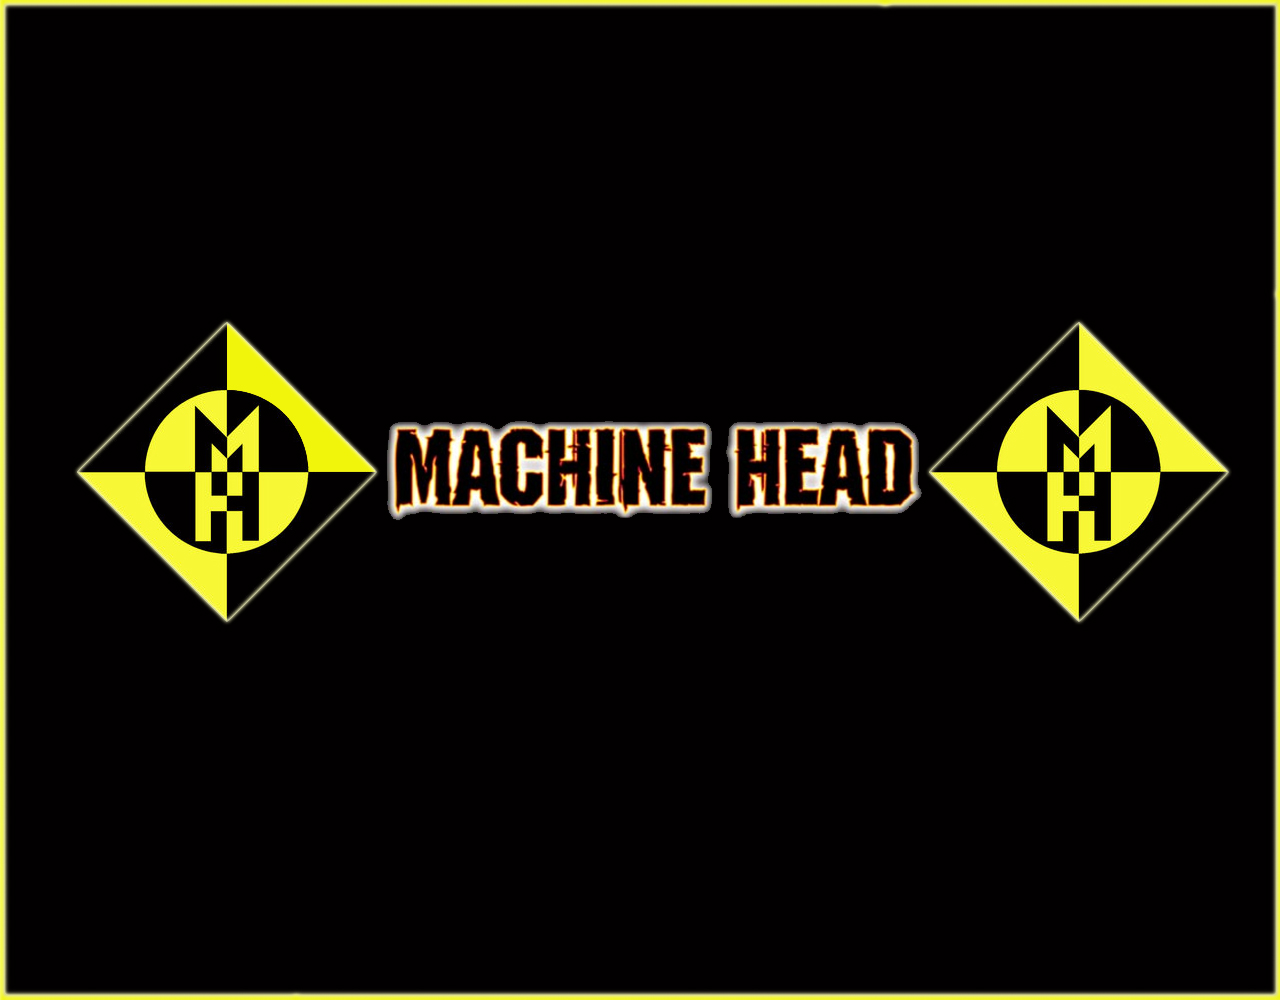 Machine Head Band Logos